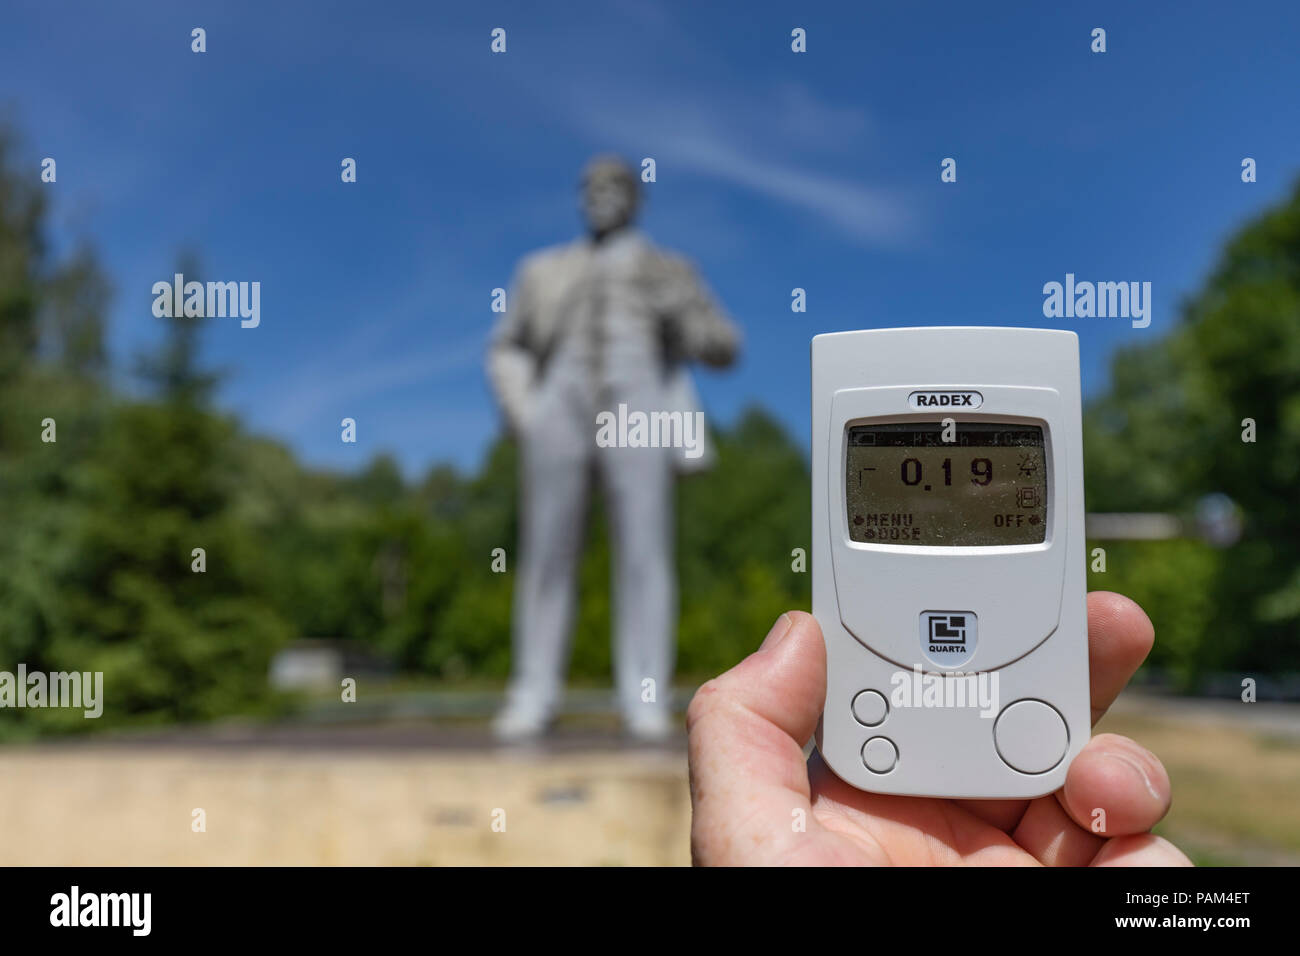 Radiation reading in the town of Chernobyl, Northern Ukraine with the statue of Lenin in the back round - Stock Image